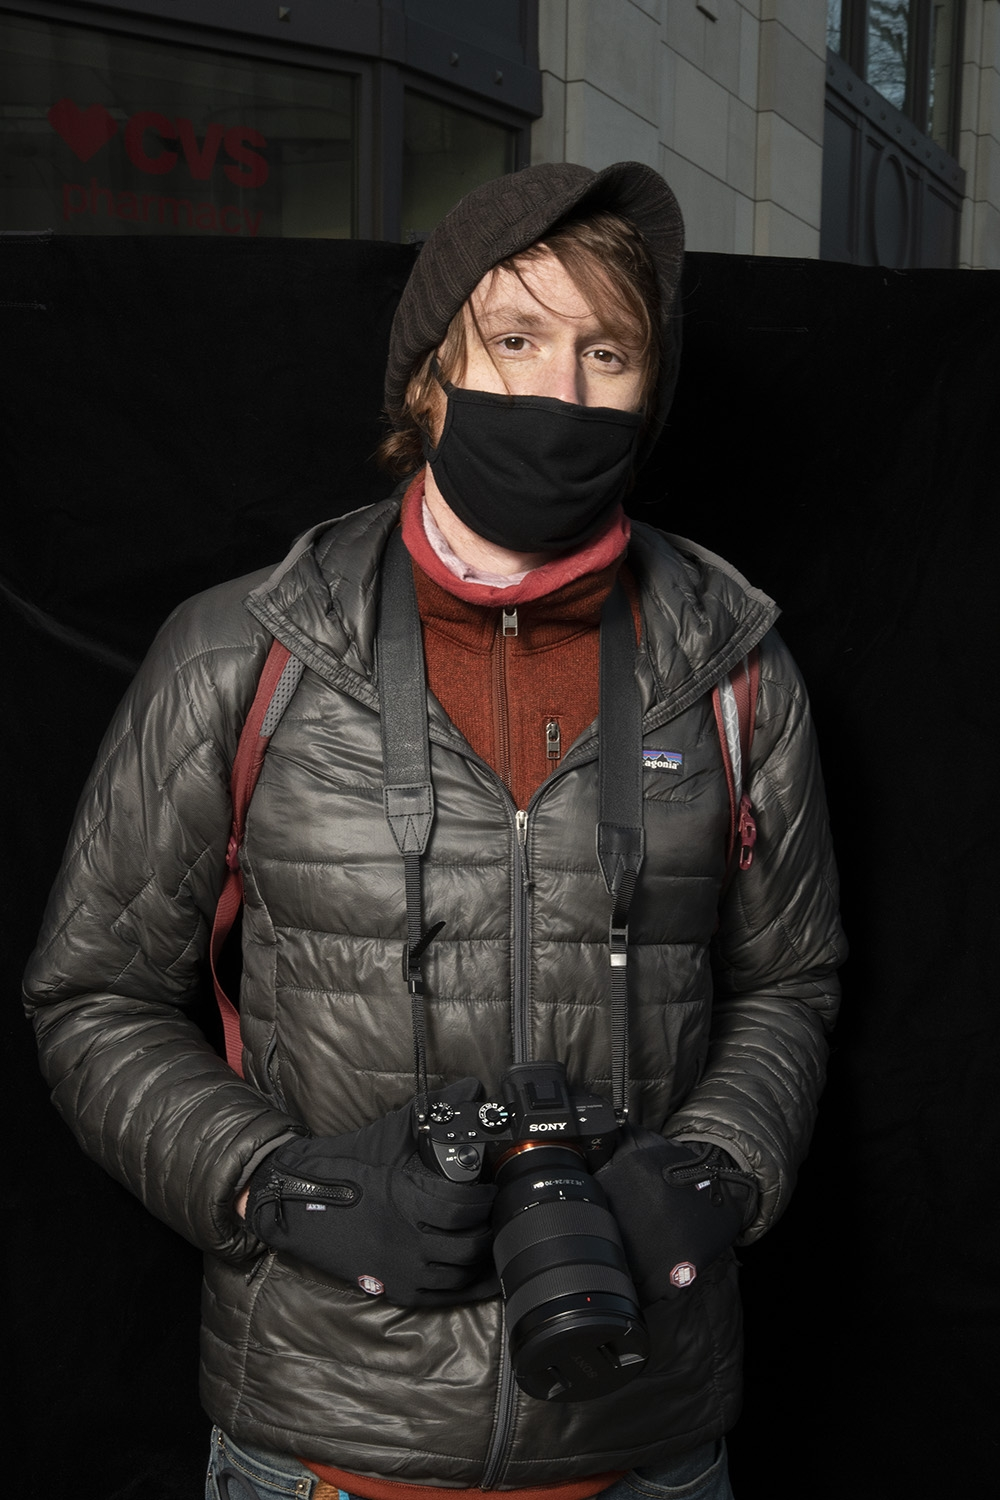 A white young man with red hair clutches a professional camera in his gloved hands. he is wearing a dark brown winter hat, a black face mask, black gloves, and a rust colored fleece jacket underneath a black puffer jacket.